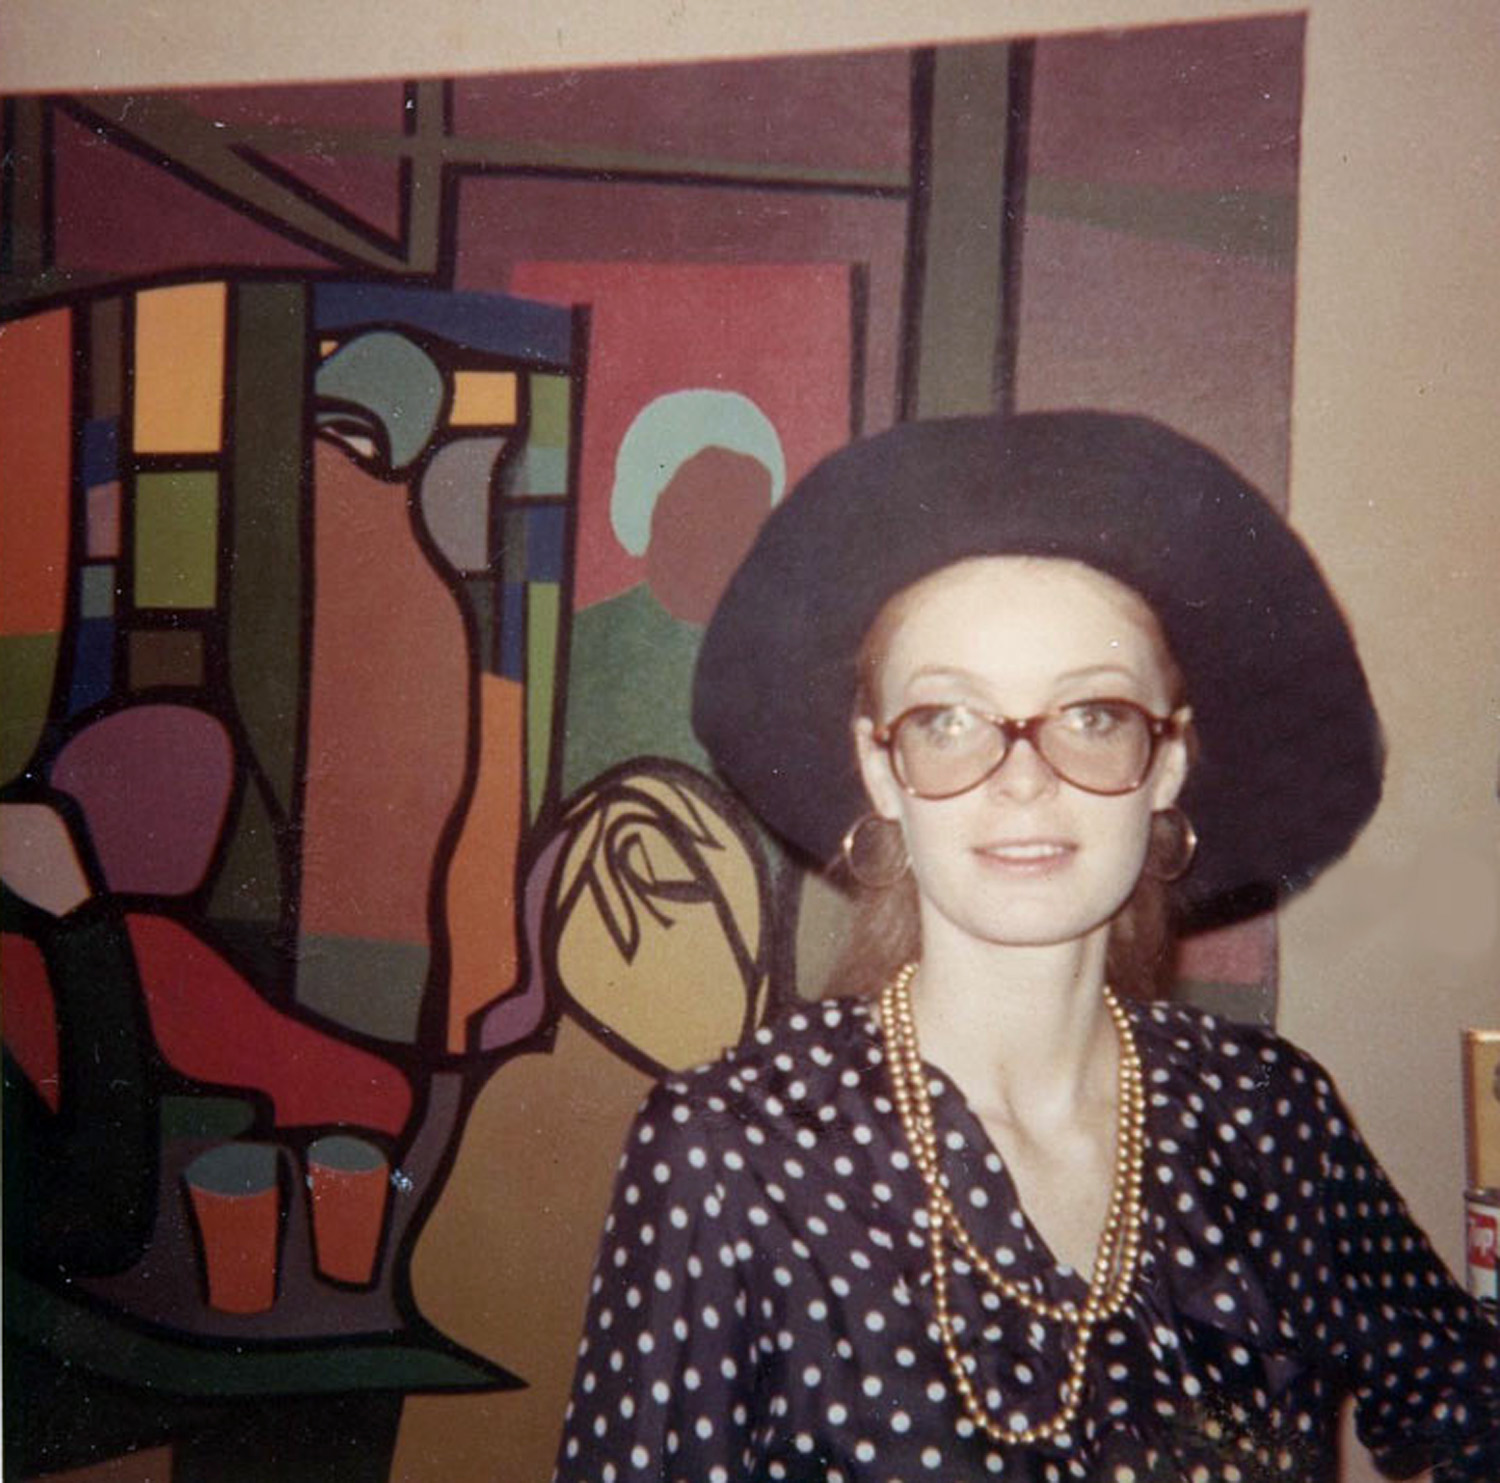 Carla Dee Ellis heading off to a modeling assignment. The painting behind her, depicting the cafeteria at SVA, is by John Wilmer, who was the intended first tenet of the loft.